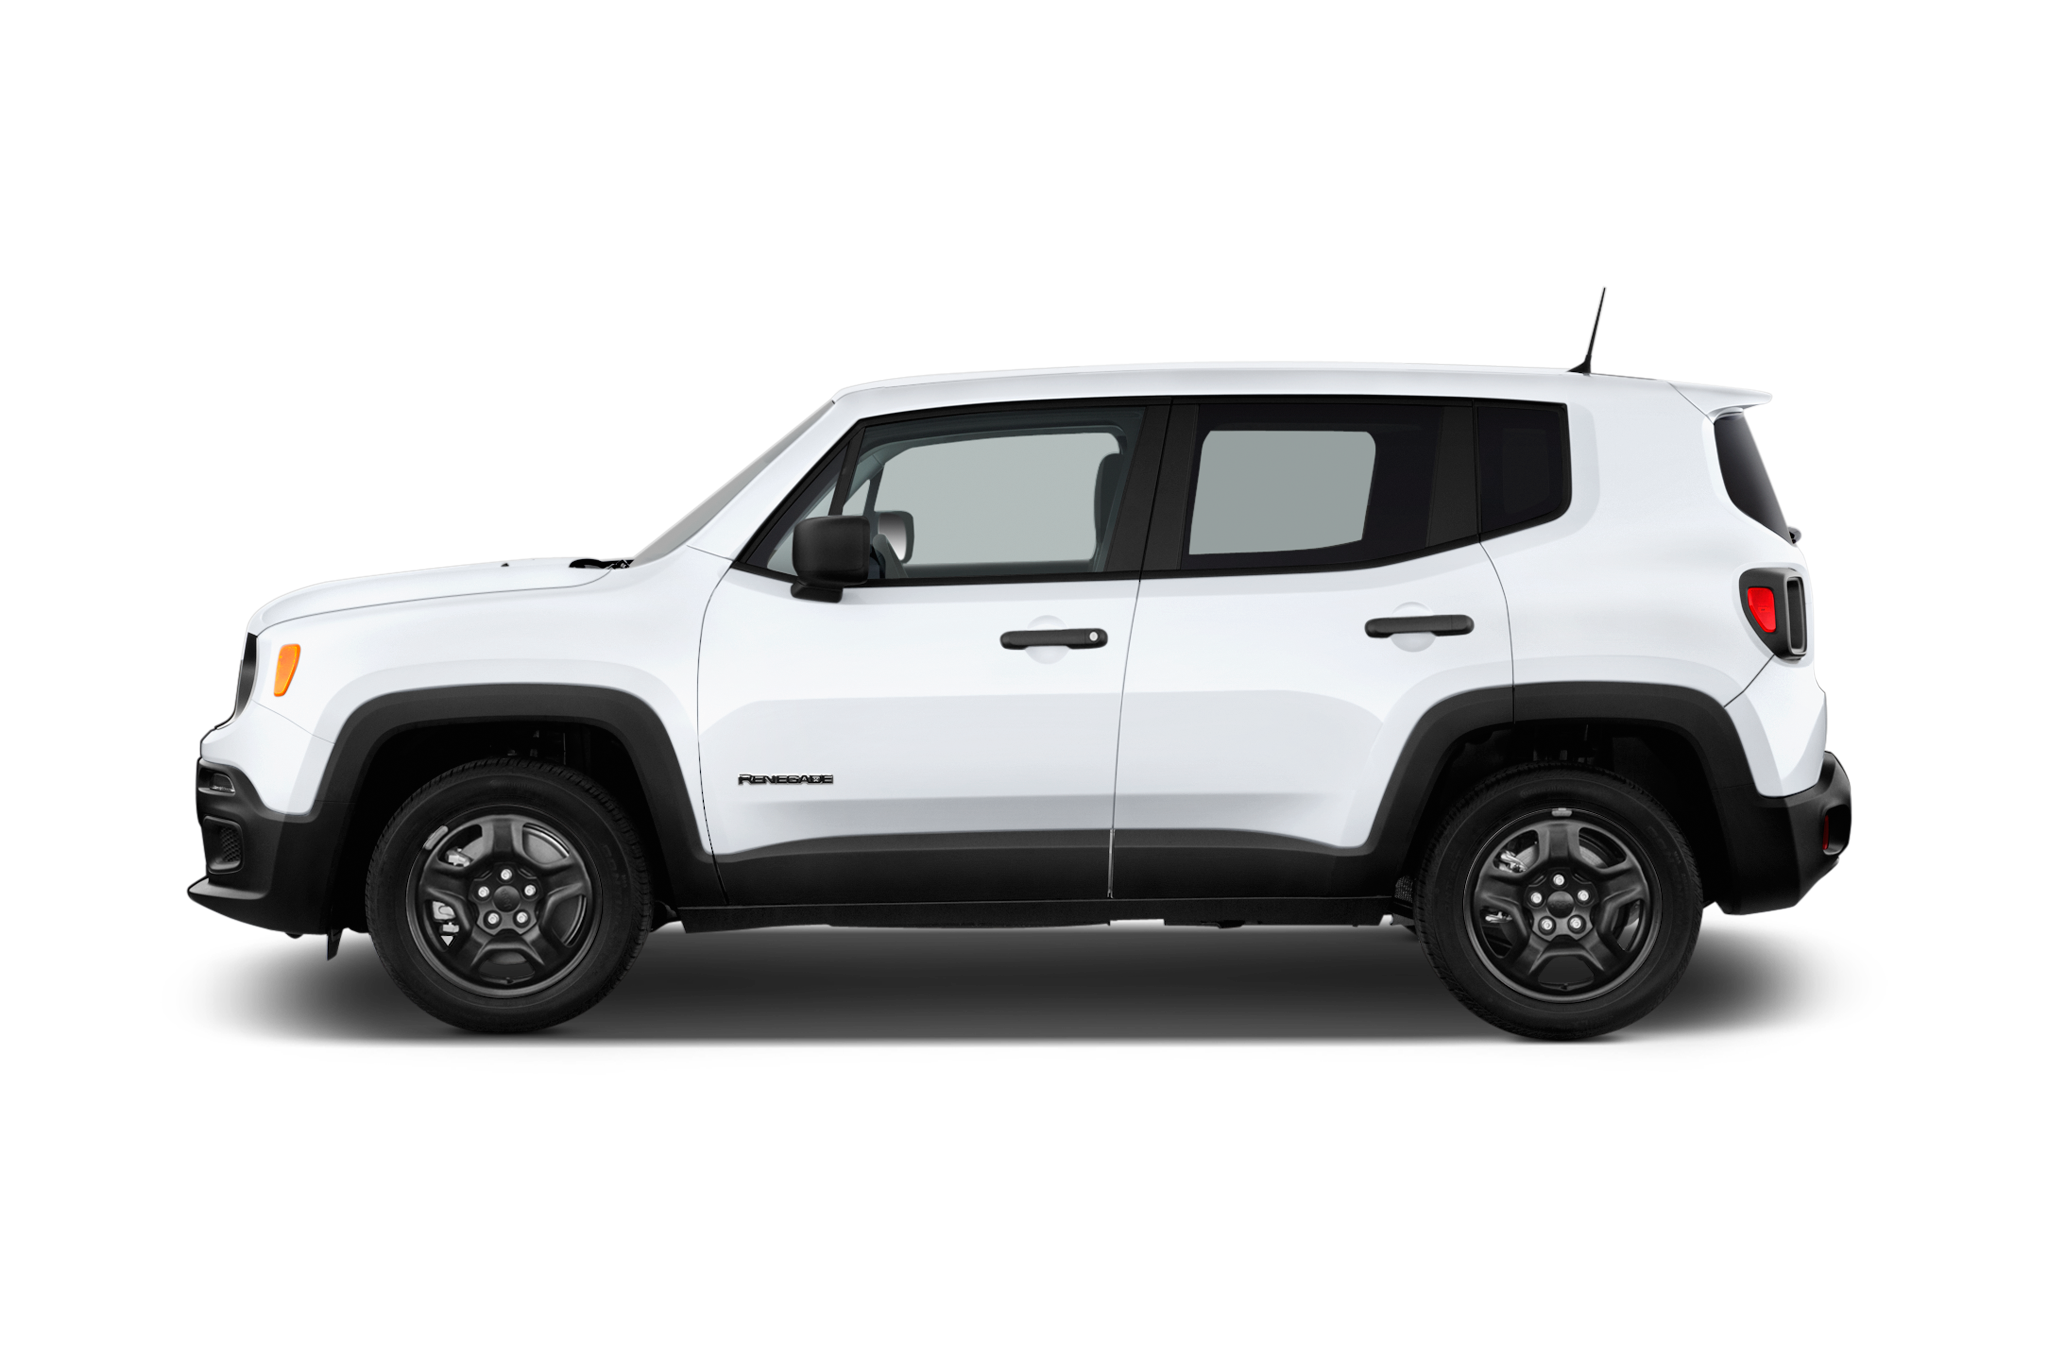 Honda car clipart svg free Jeep Renegade Hell's Revenge Is Inspired by Harley-Davidson svg free